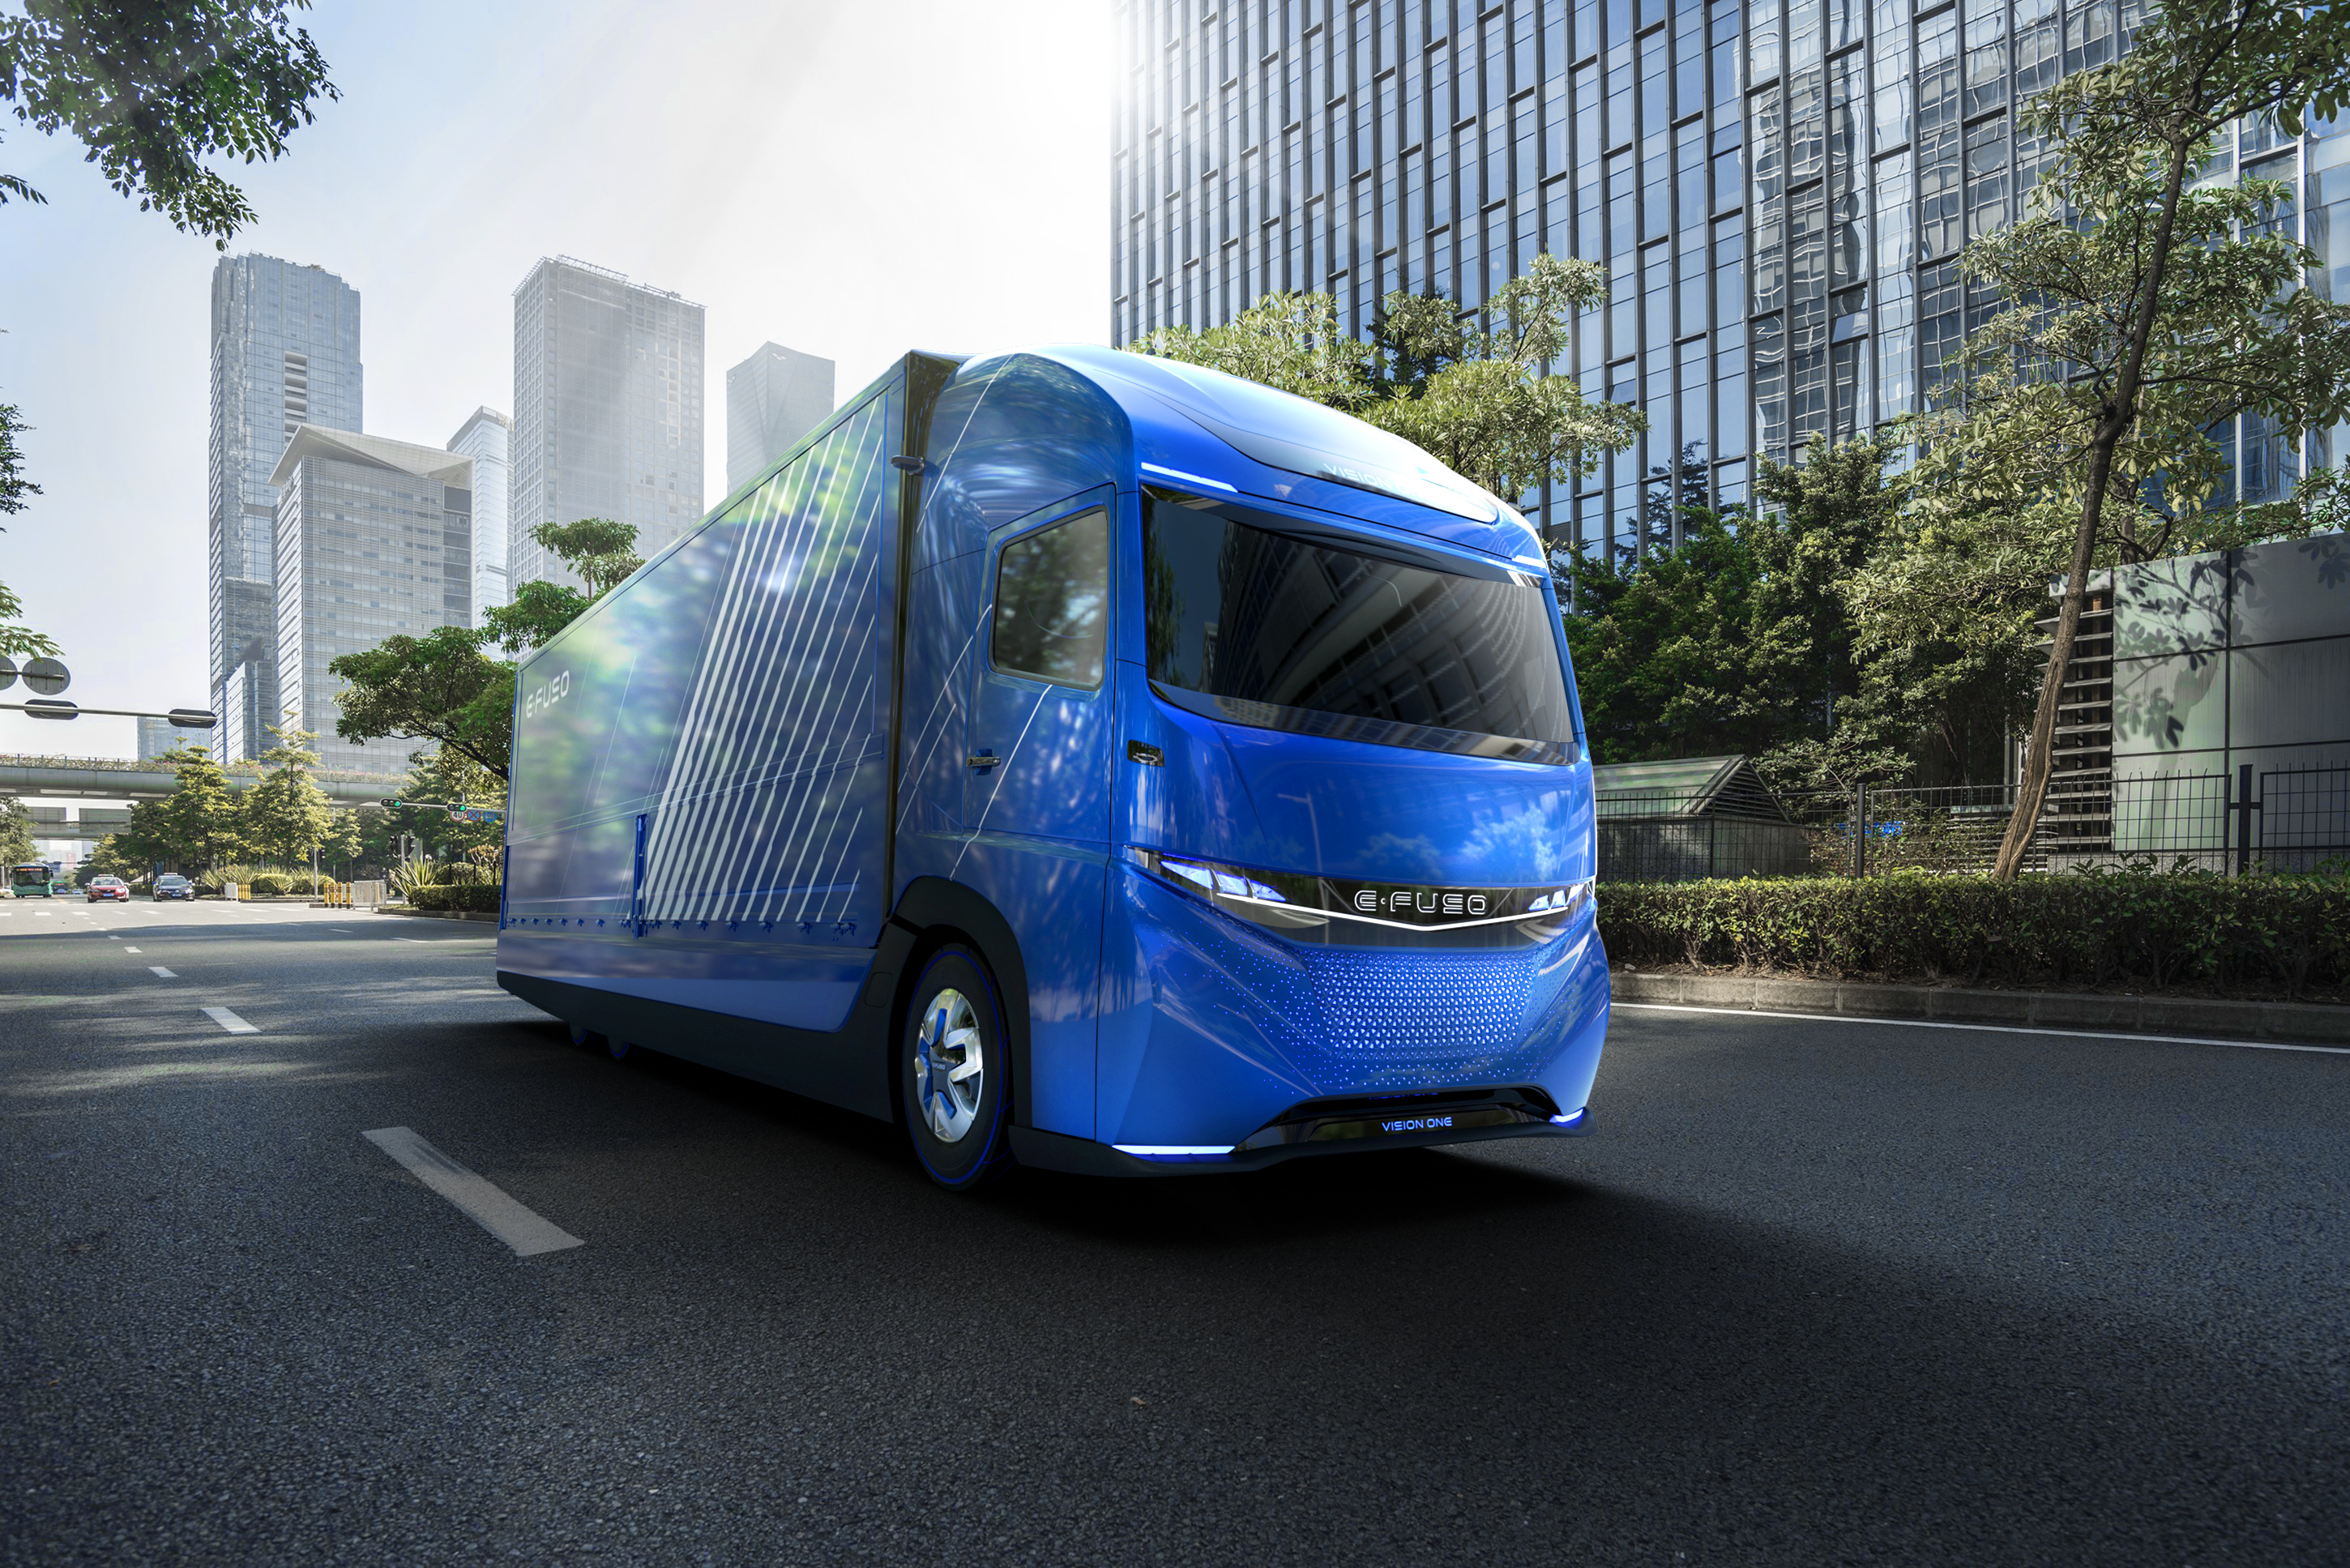 Daimler's new electric heavy-duty truck has 220 miles of range